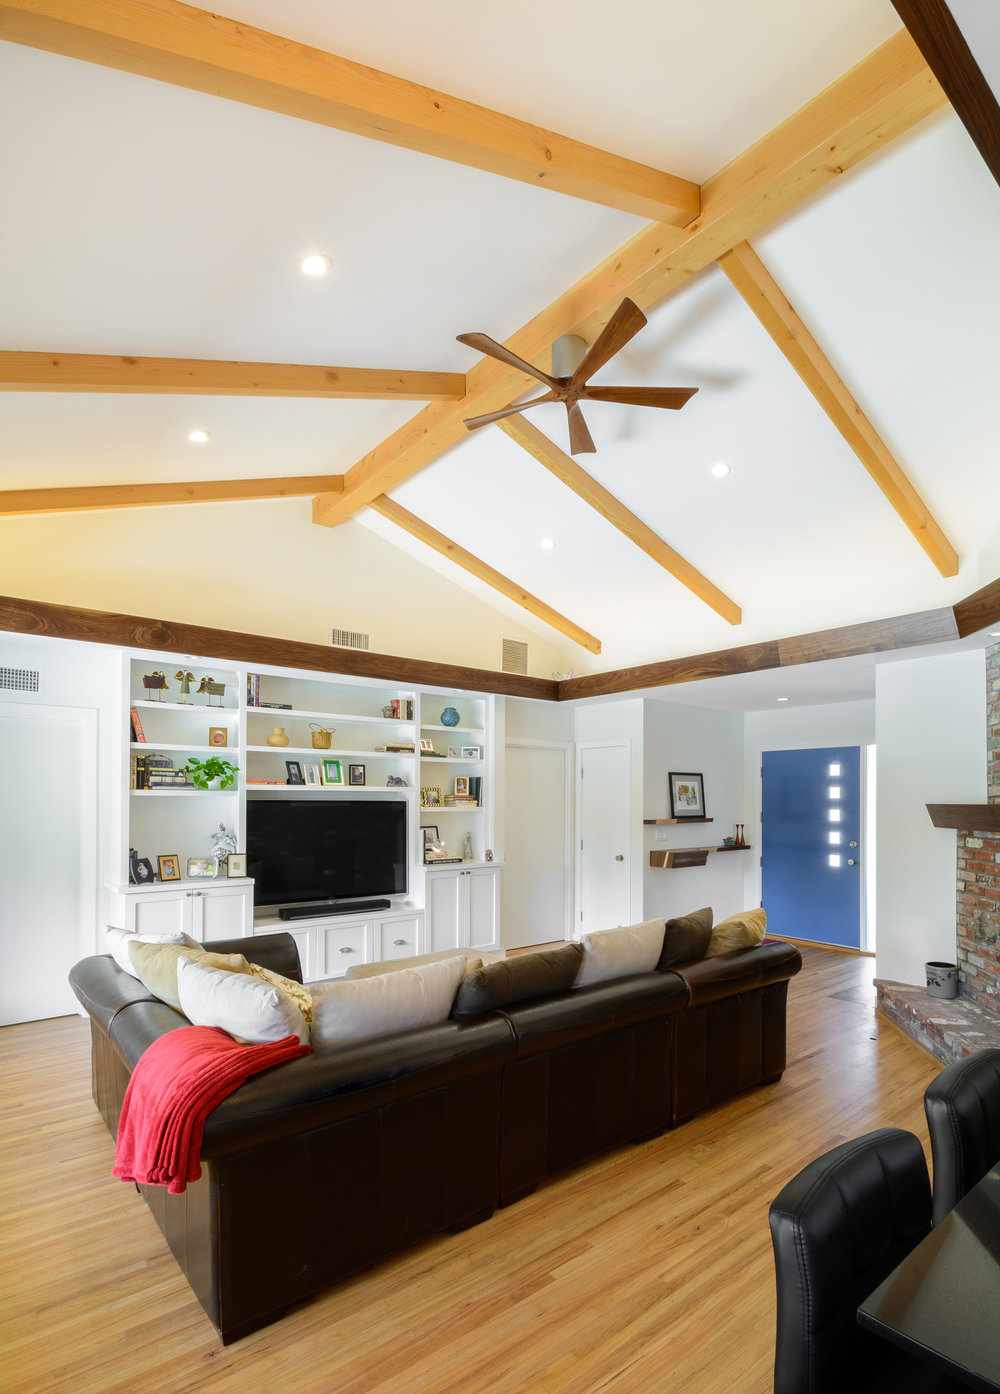 Mid-Century-Ranch-Remodel-Living-Room-Cathedral-Ceiling-Exposed-Beams-Entertainment-Cabinet.jpg